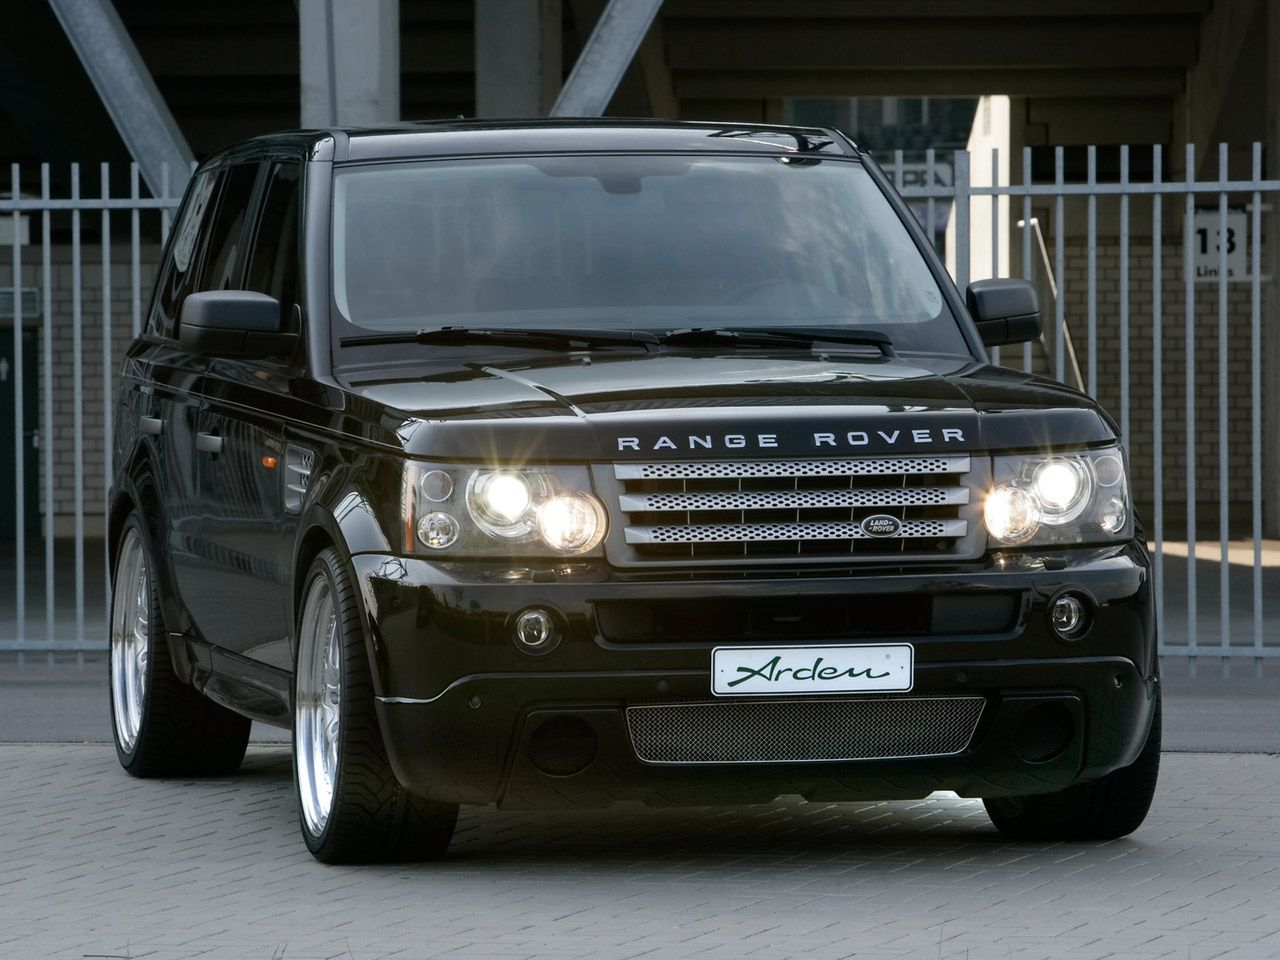 Best Range Rover Since It S Start To Producted Range Rover Hse Range Rover Range Rover Sport